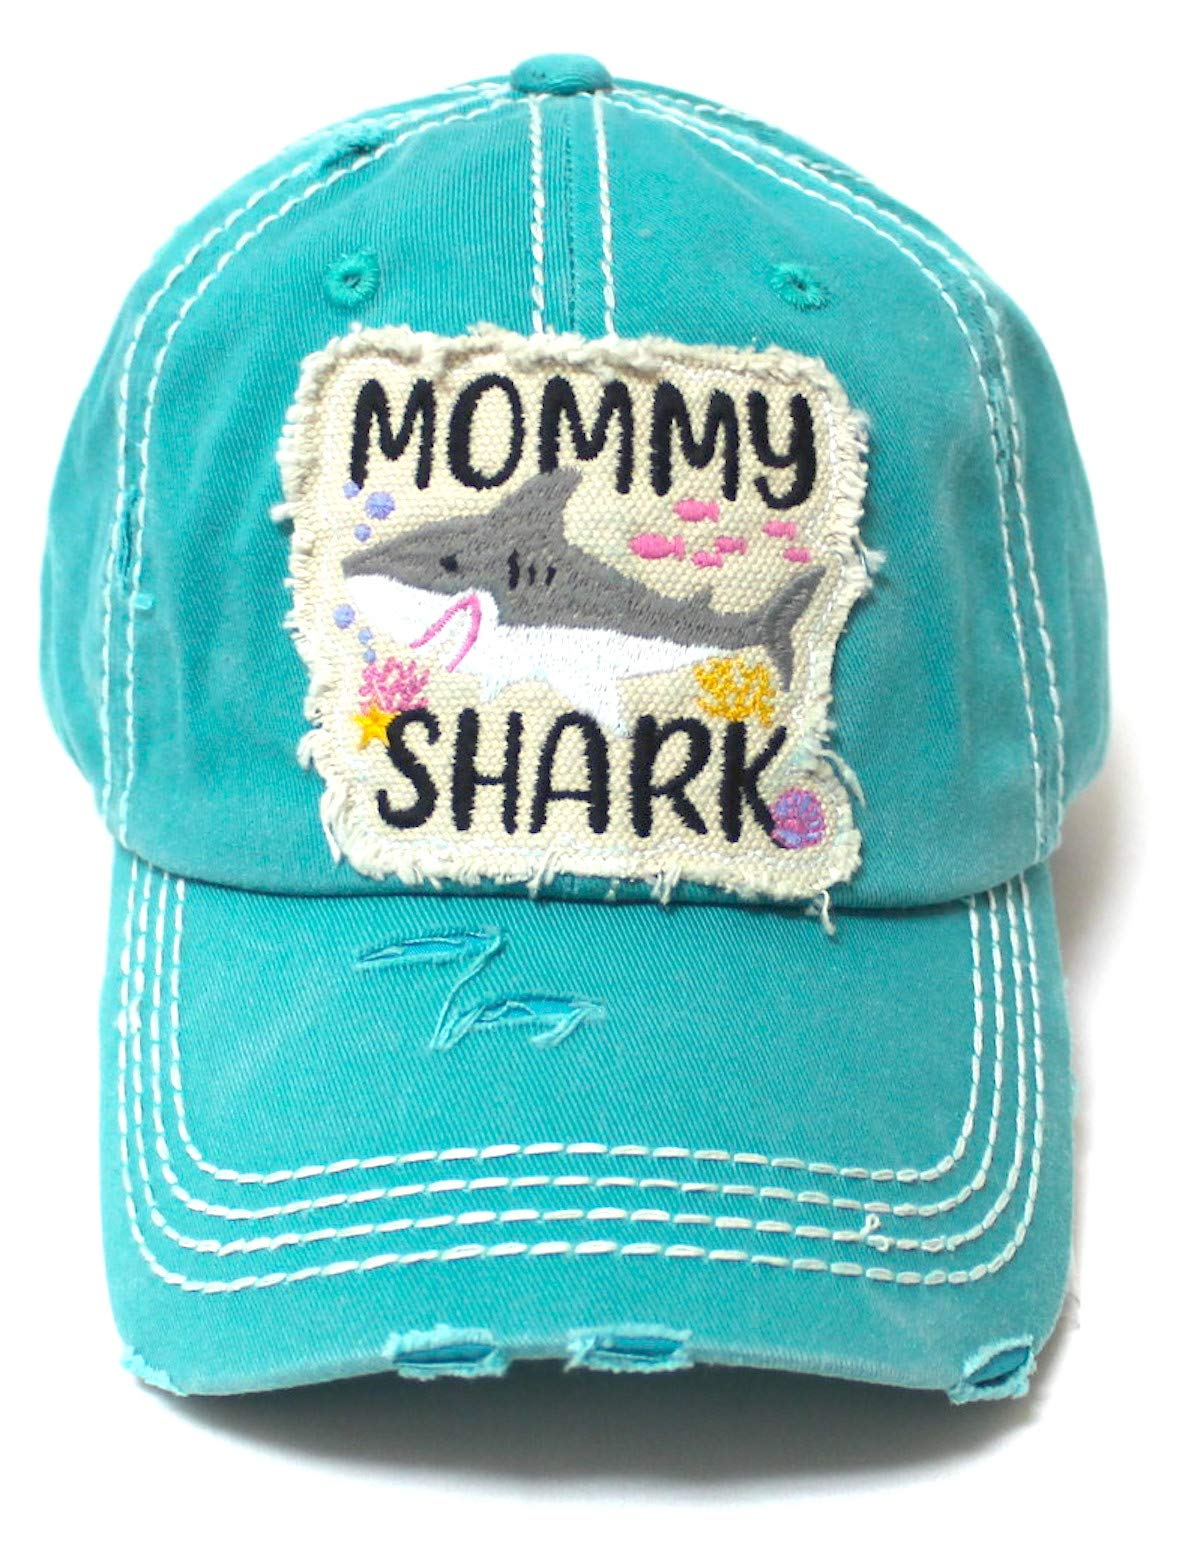 Womens Distressed Adjustable Hat Mommy Shark Patch Embroidery Monogram Ballcap, Seaworld Blue - Caps 'N Vintage